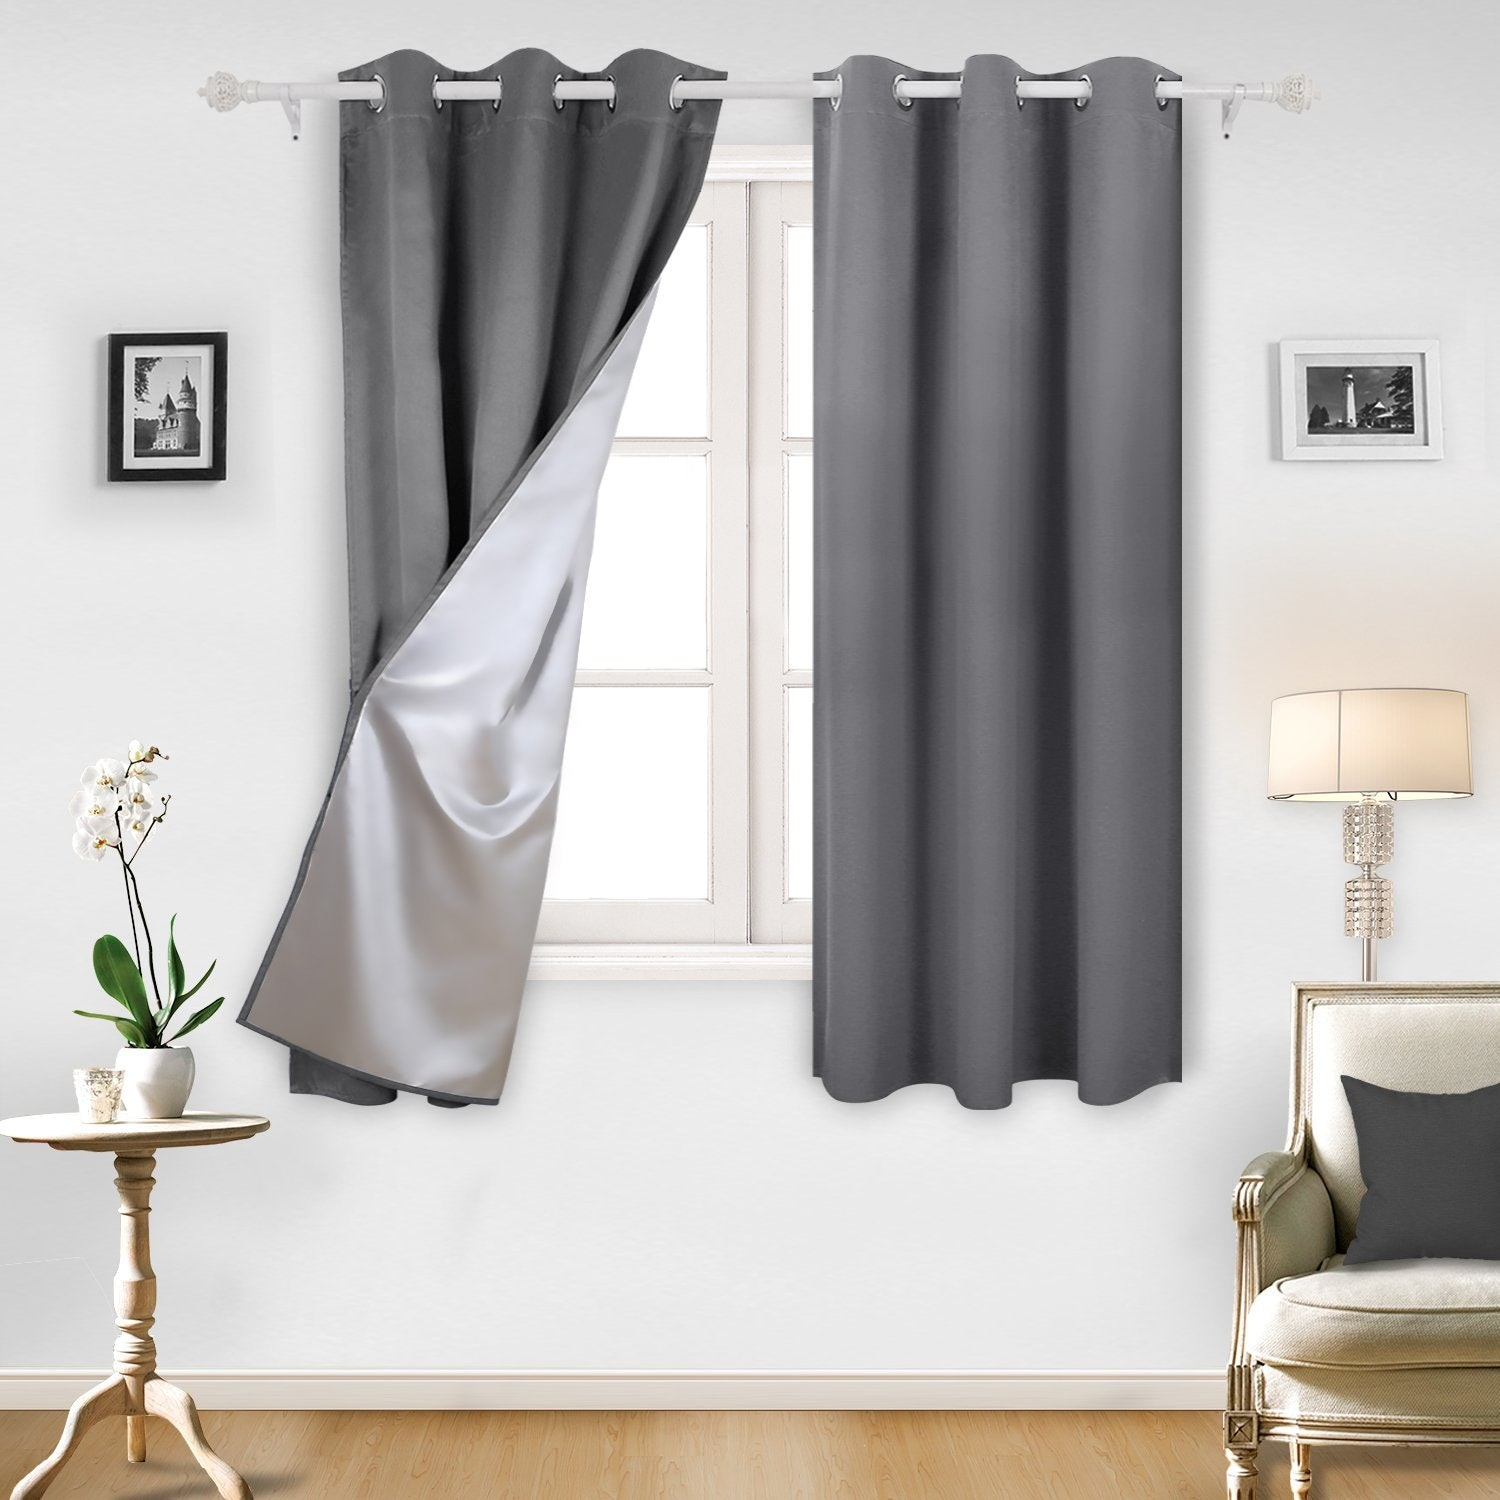 45 Inch Blackout Curtains The 7 Best Blackout Curtains